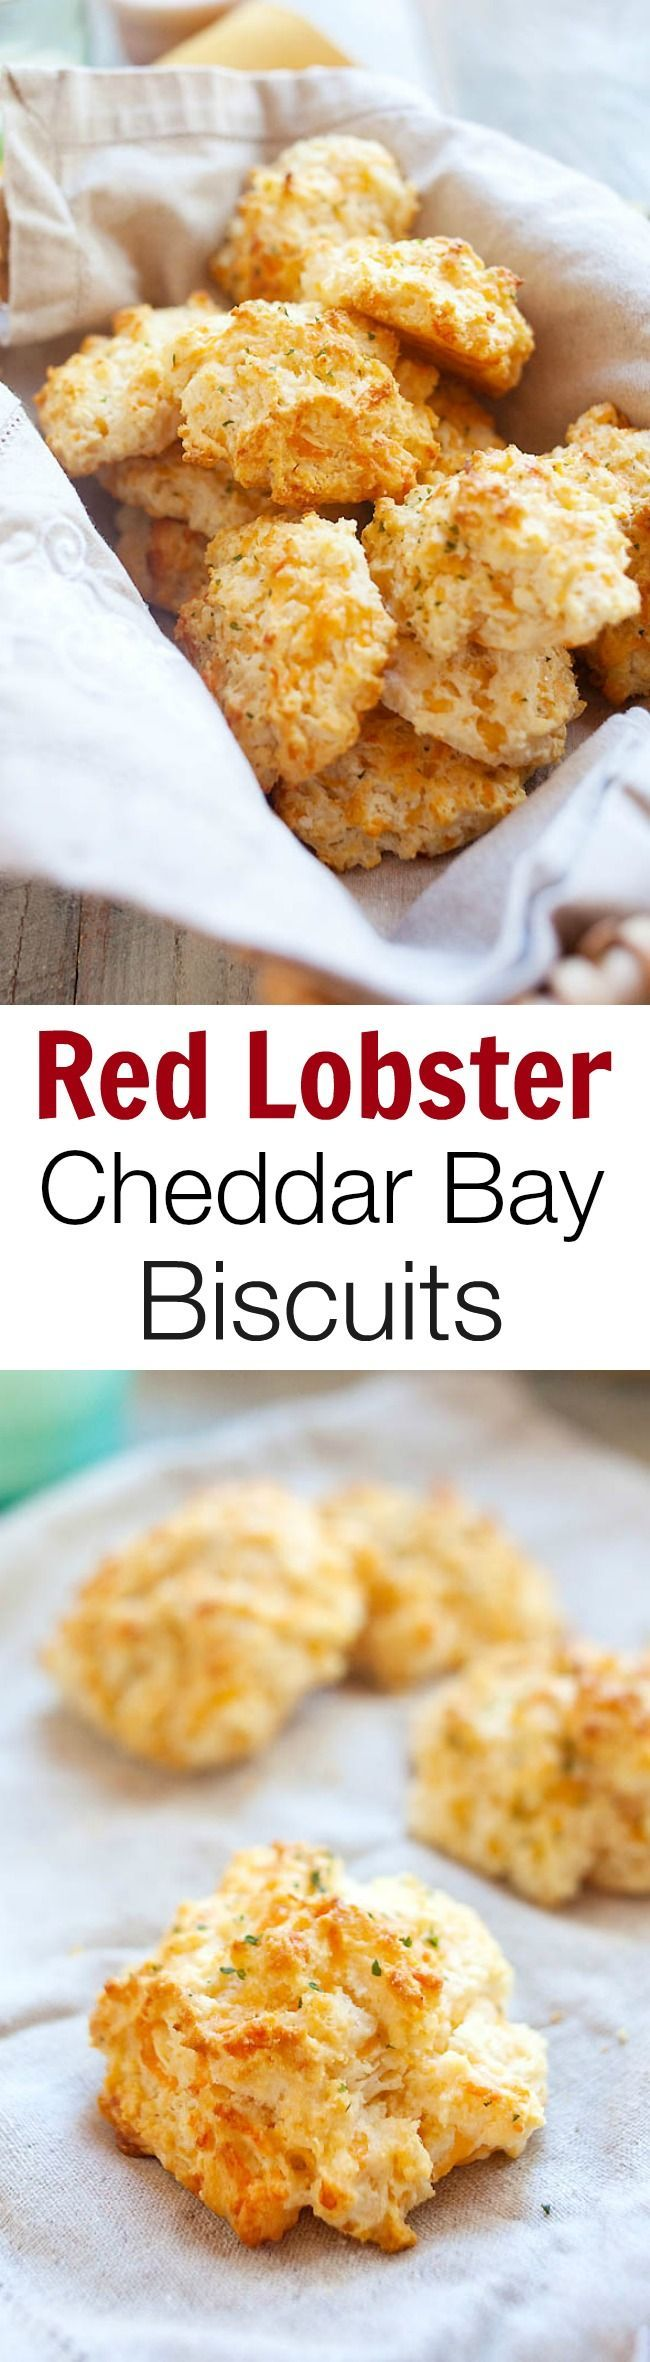 red lobster cheddar biscuits mix instructions